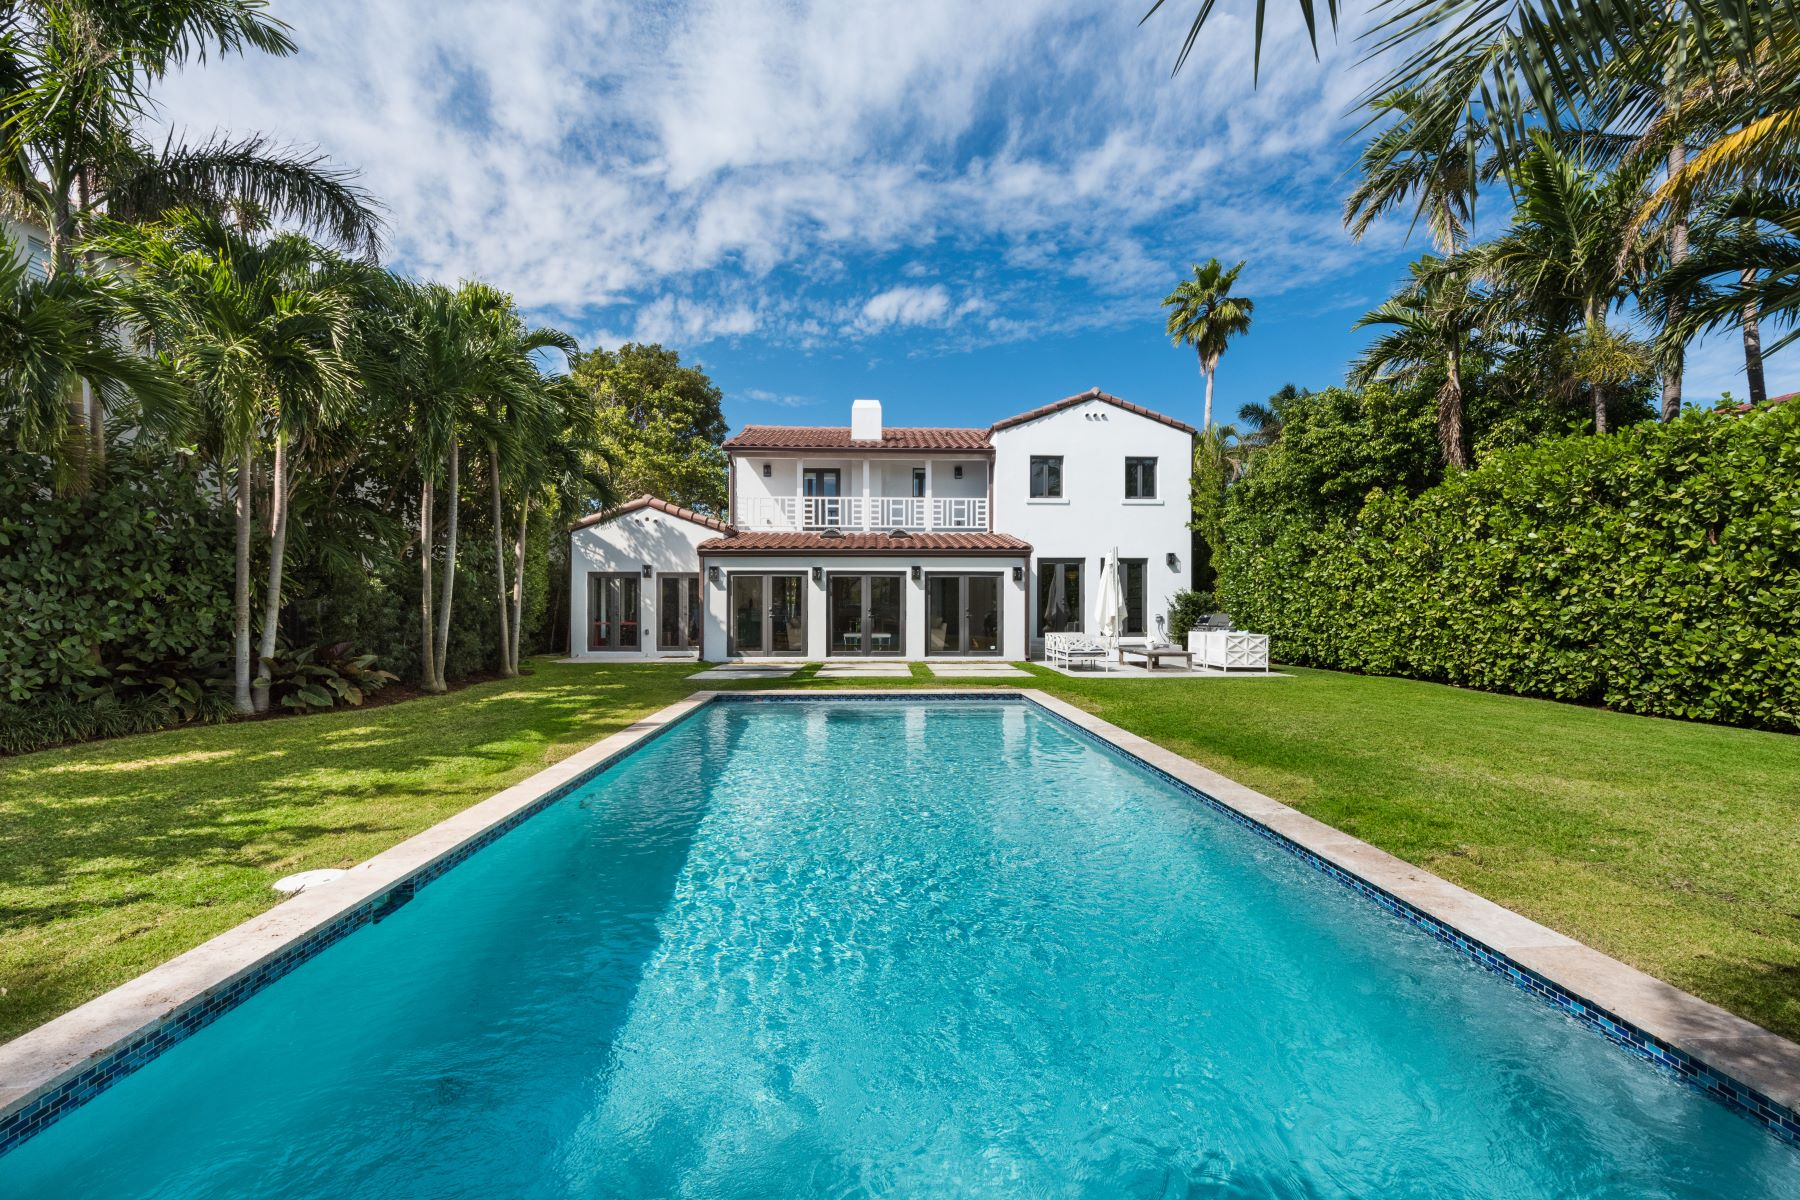 Single Family Home for Sale at 4475 N Meridian Ave Miami Beach, Florida, 33140 United States